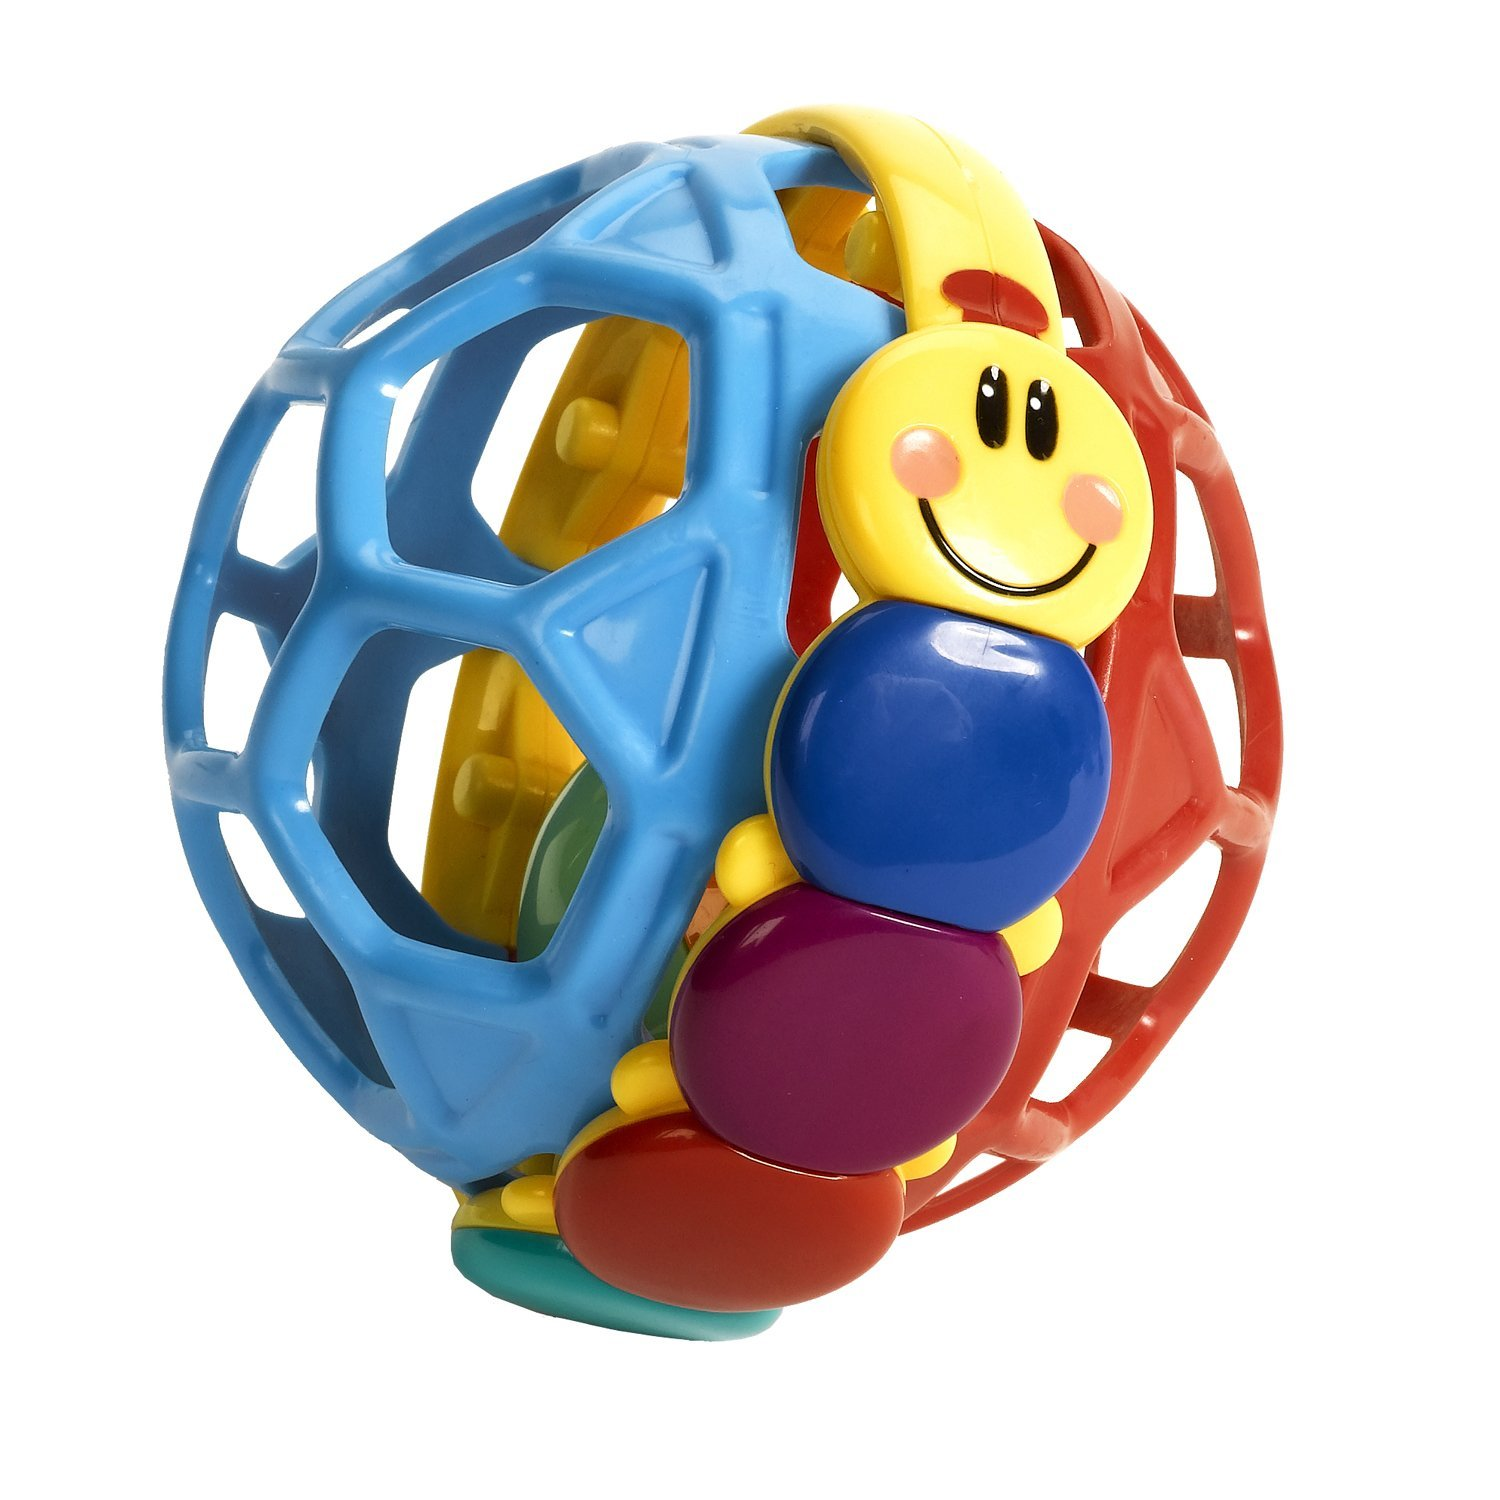 Review of Baby Einstein Bendy Ball